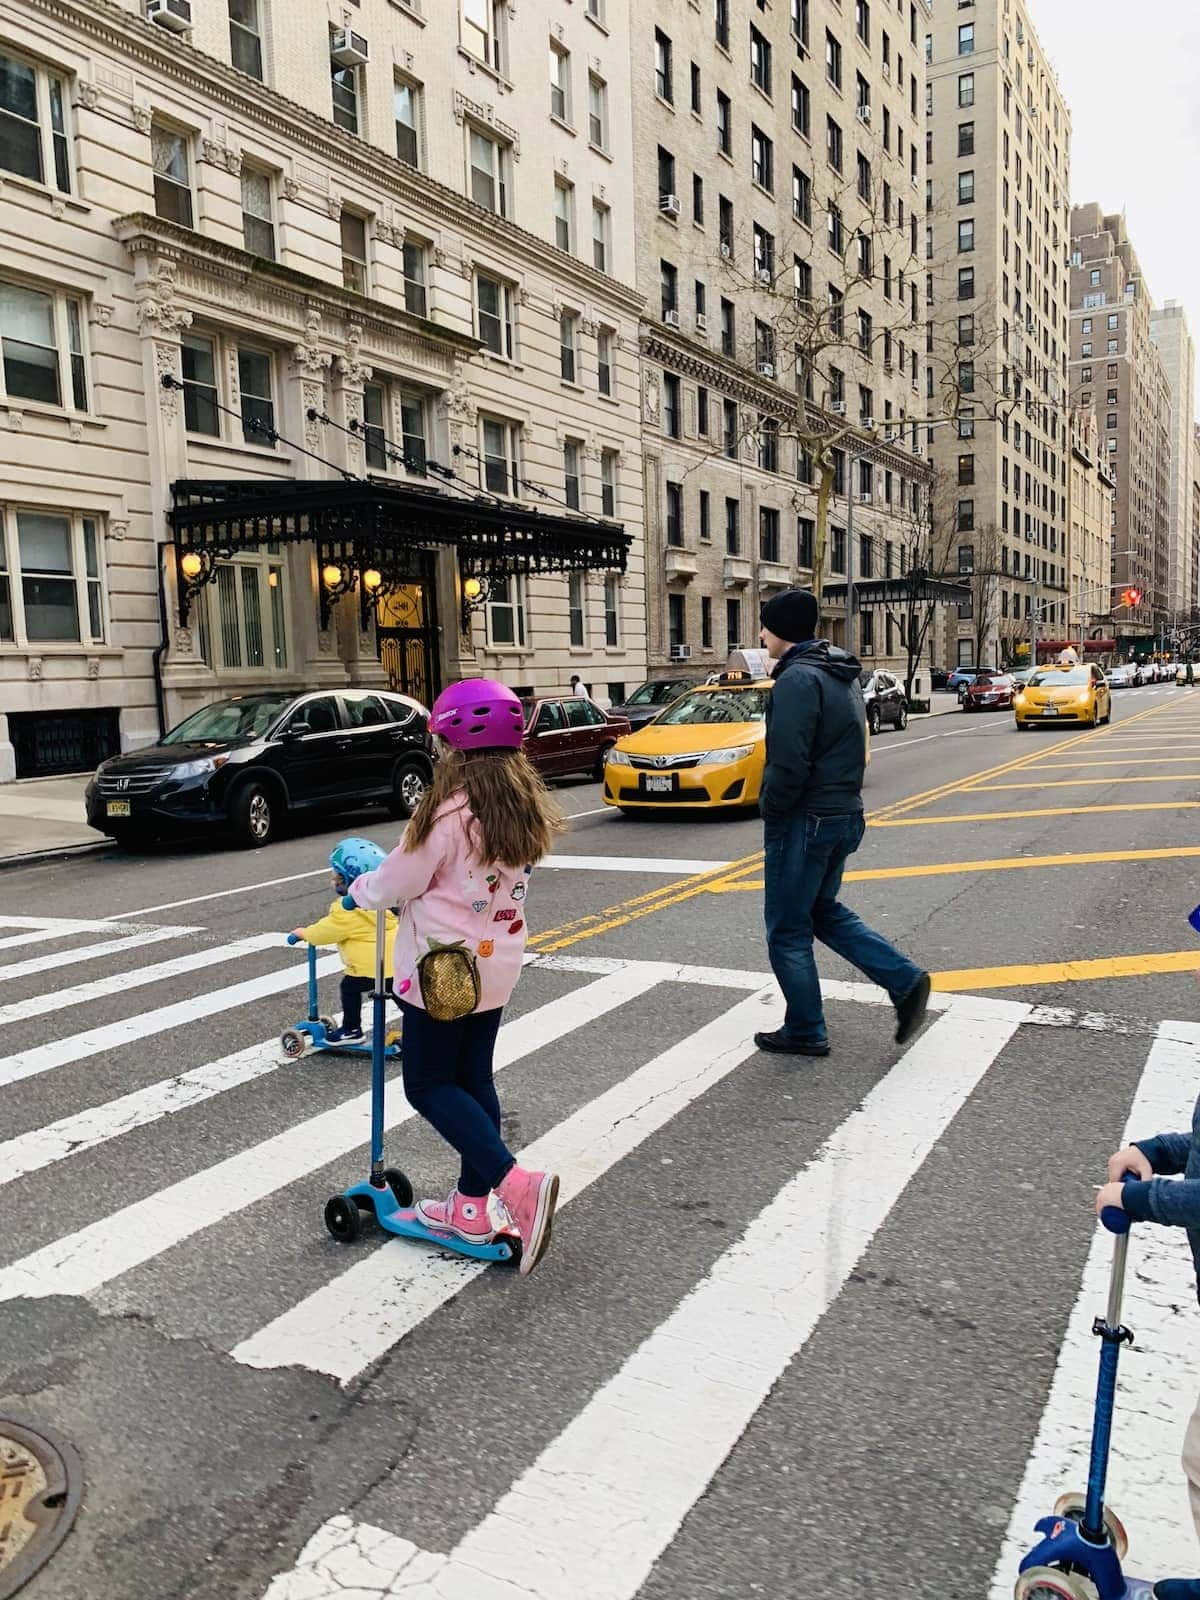 Gordon and the kids crossing the street